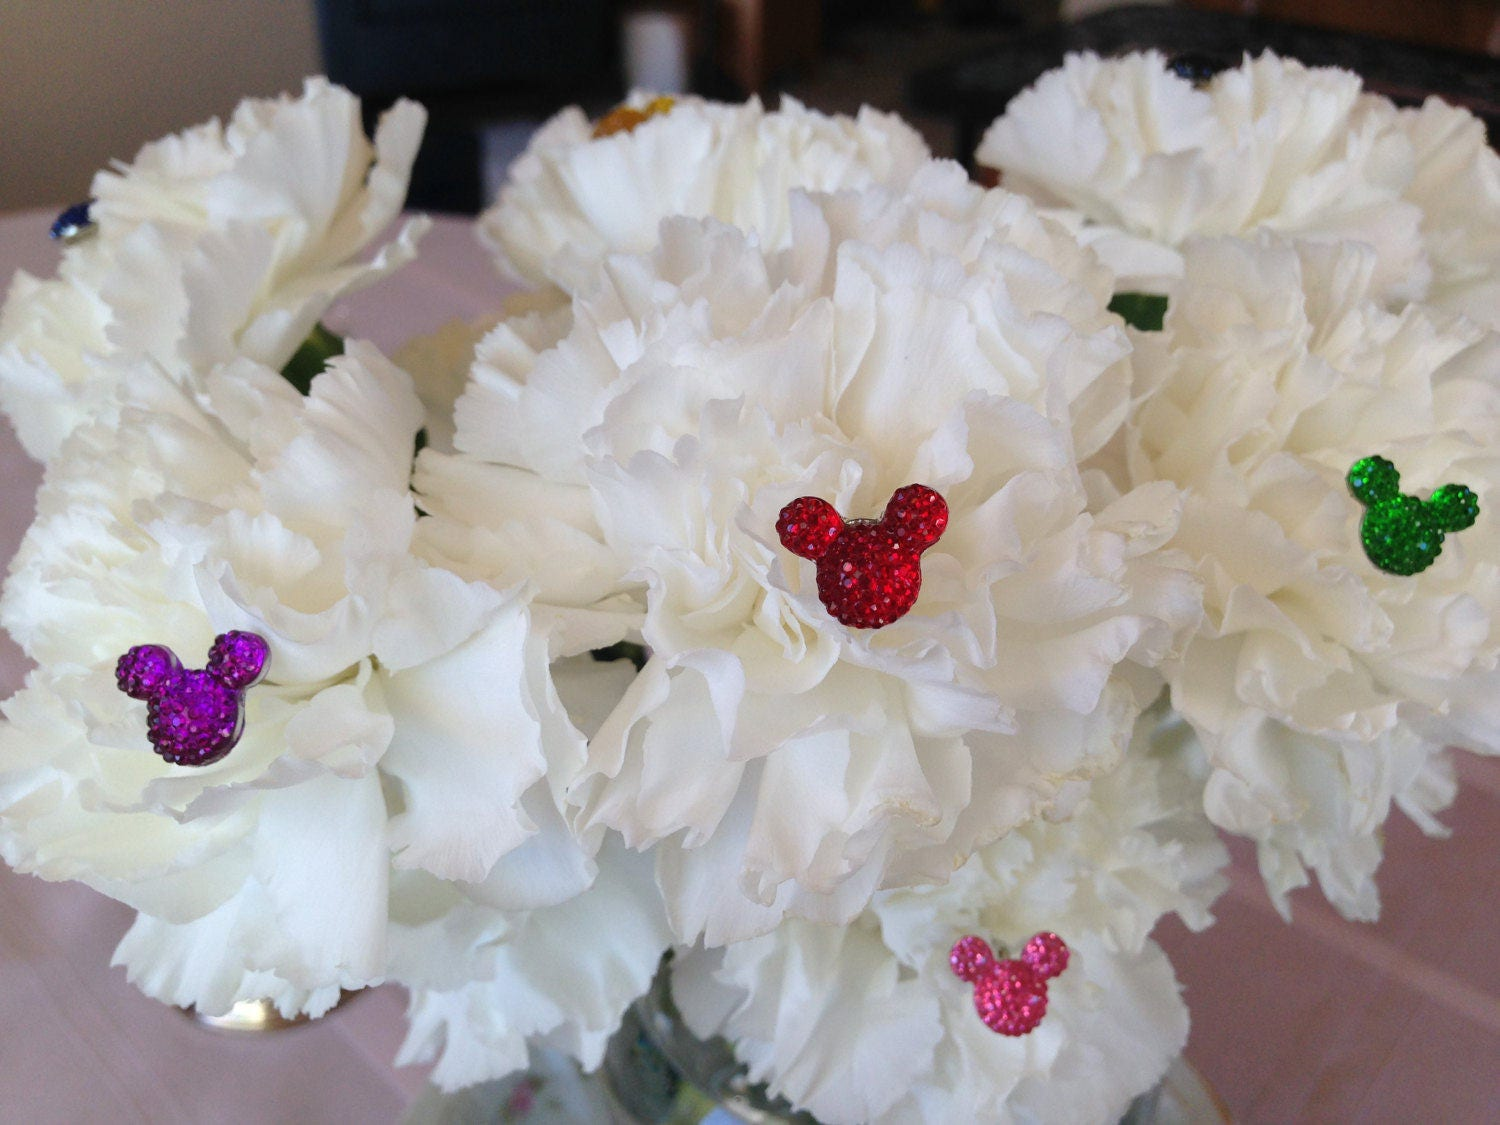 Disney wedding 4 hidden mickey flower pins bouquets disney floral disney wedding 4 hidden mickey flower pins bouquets disney floral pins disney corsage picks multi colors of your choice izmirmasajfo Image collections